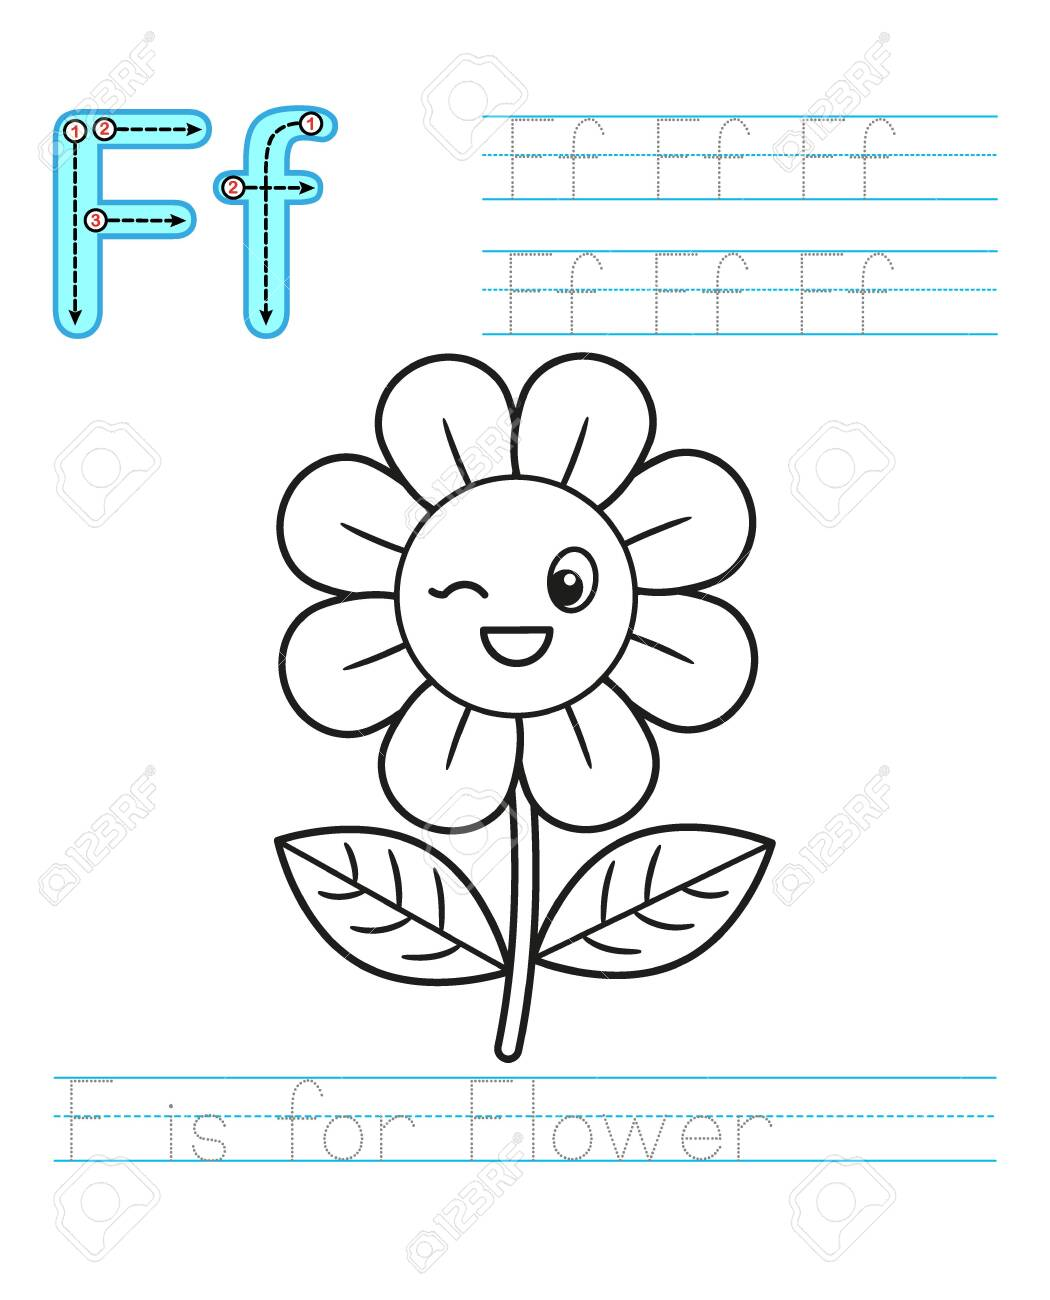 Coloring Book Page Printable Worksheet For Kindergarten And Royalty Free Cliparts Vectors And Stock Illustration Image 150011316